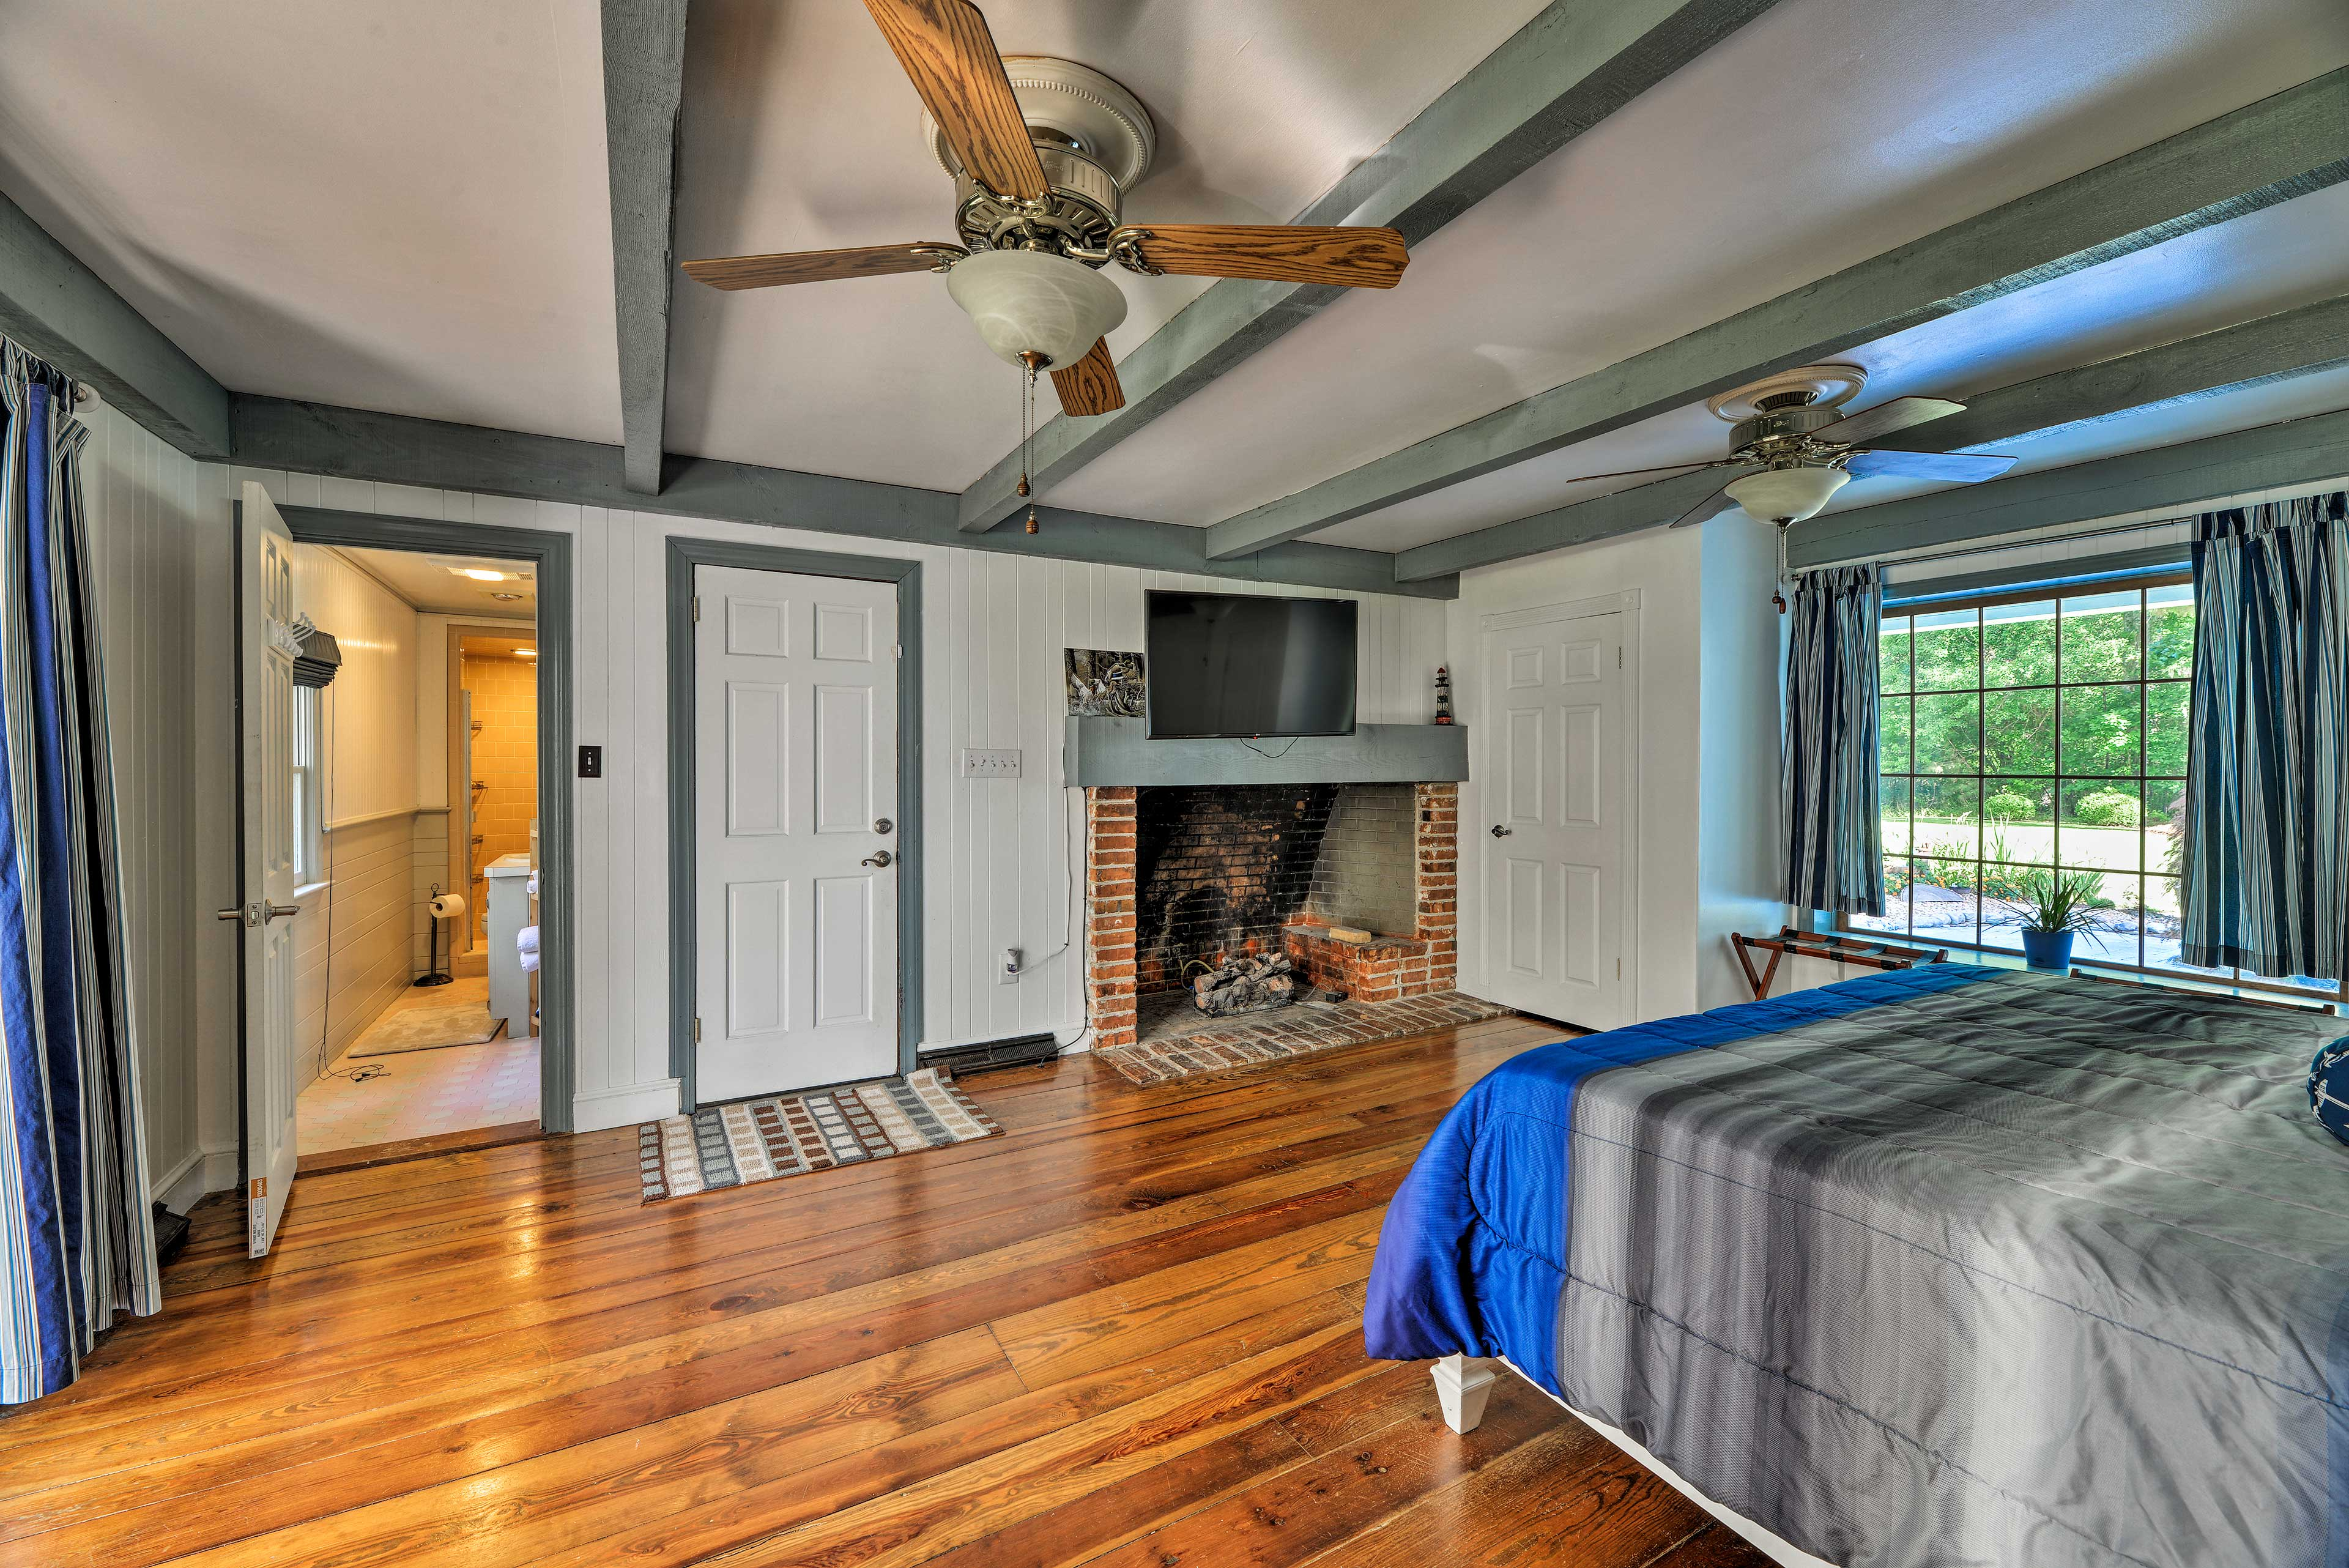 The master bedroom hosts a king bed and flat-screen TV.